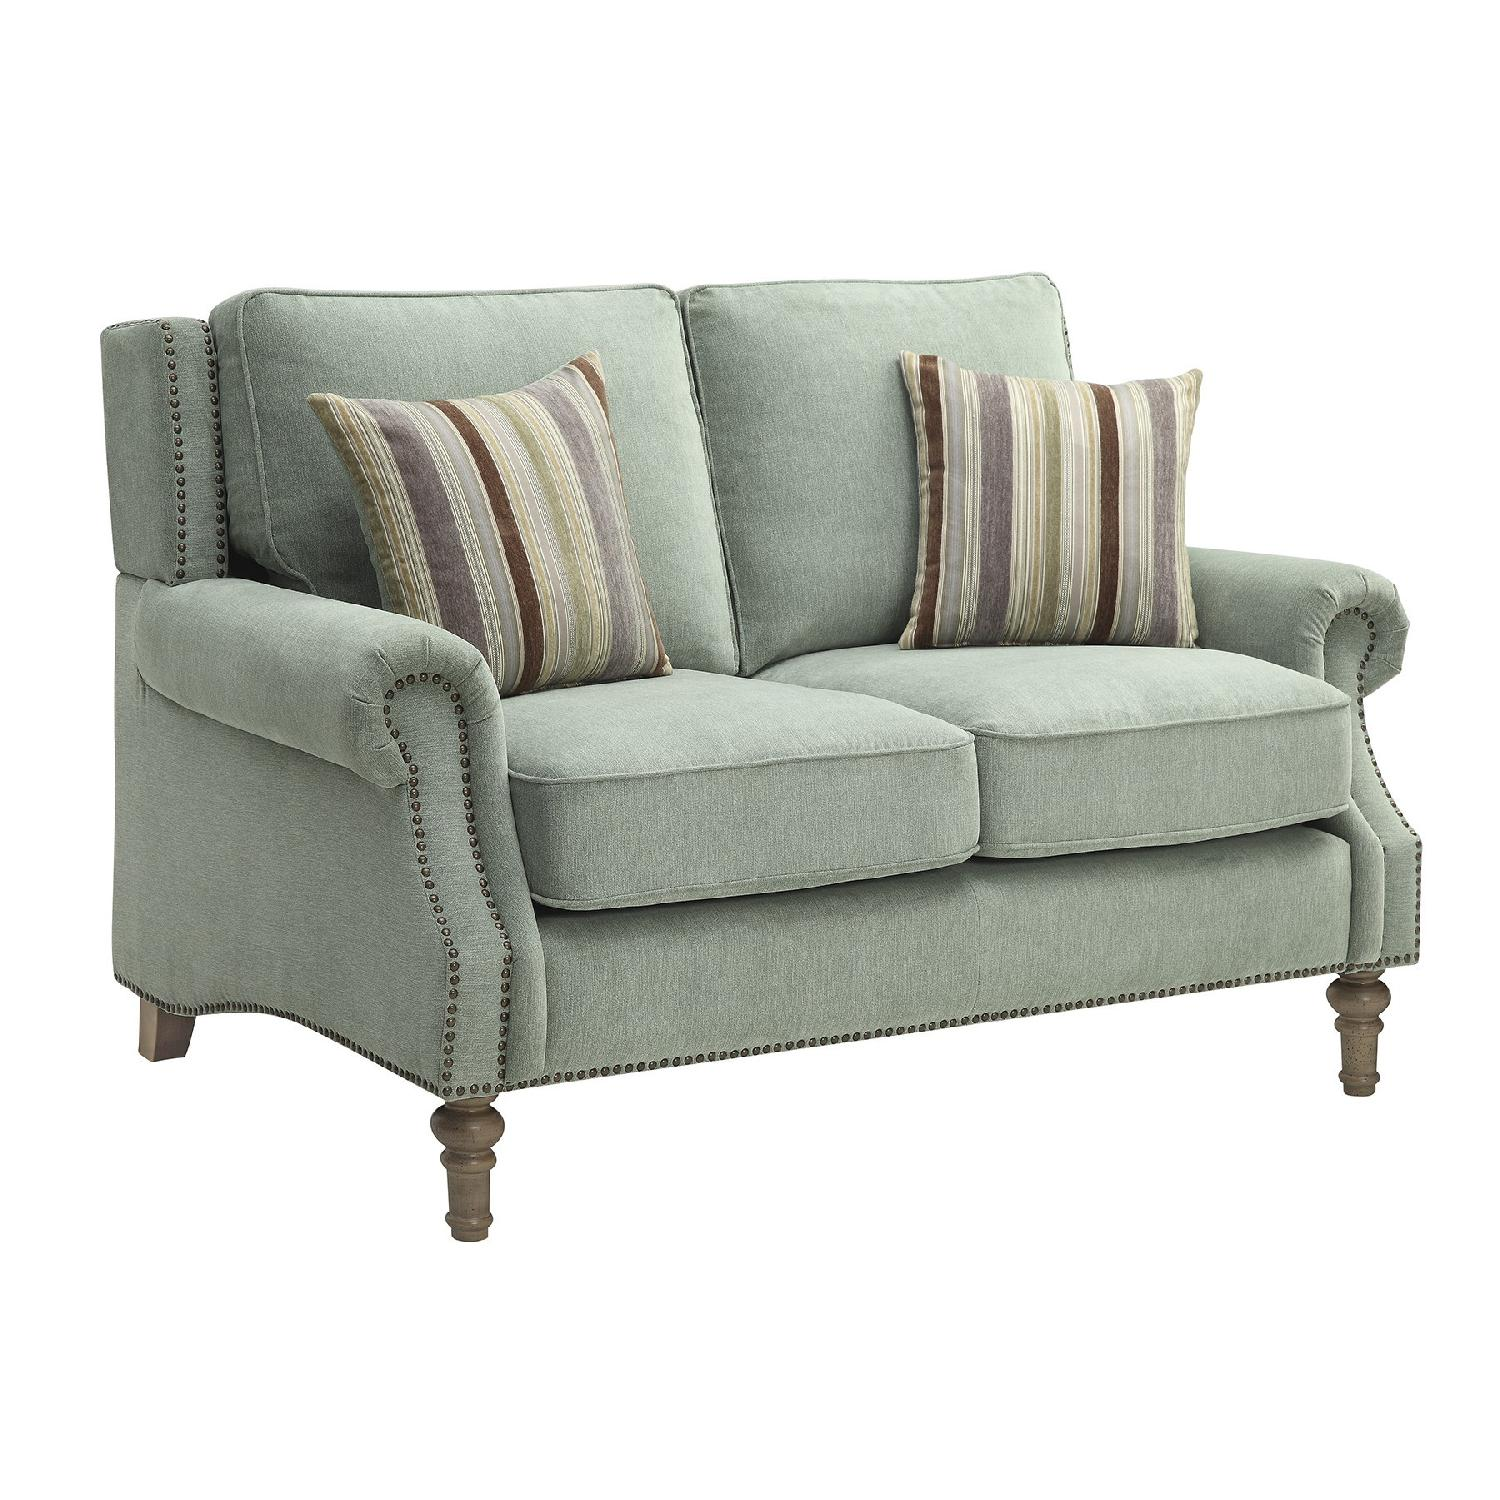 Loveseat in Sage Microvelet Fabric w/ Nailhead Trim & Feather Blend Cushions & Accent Pillows